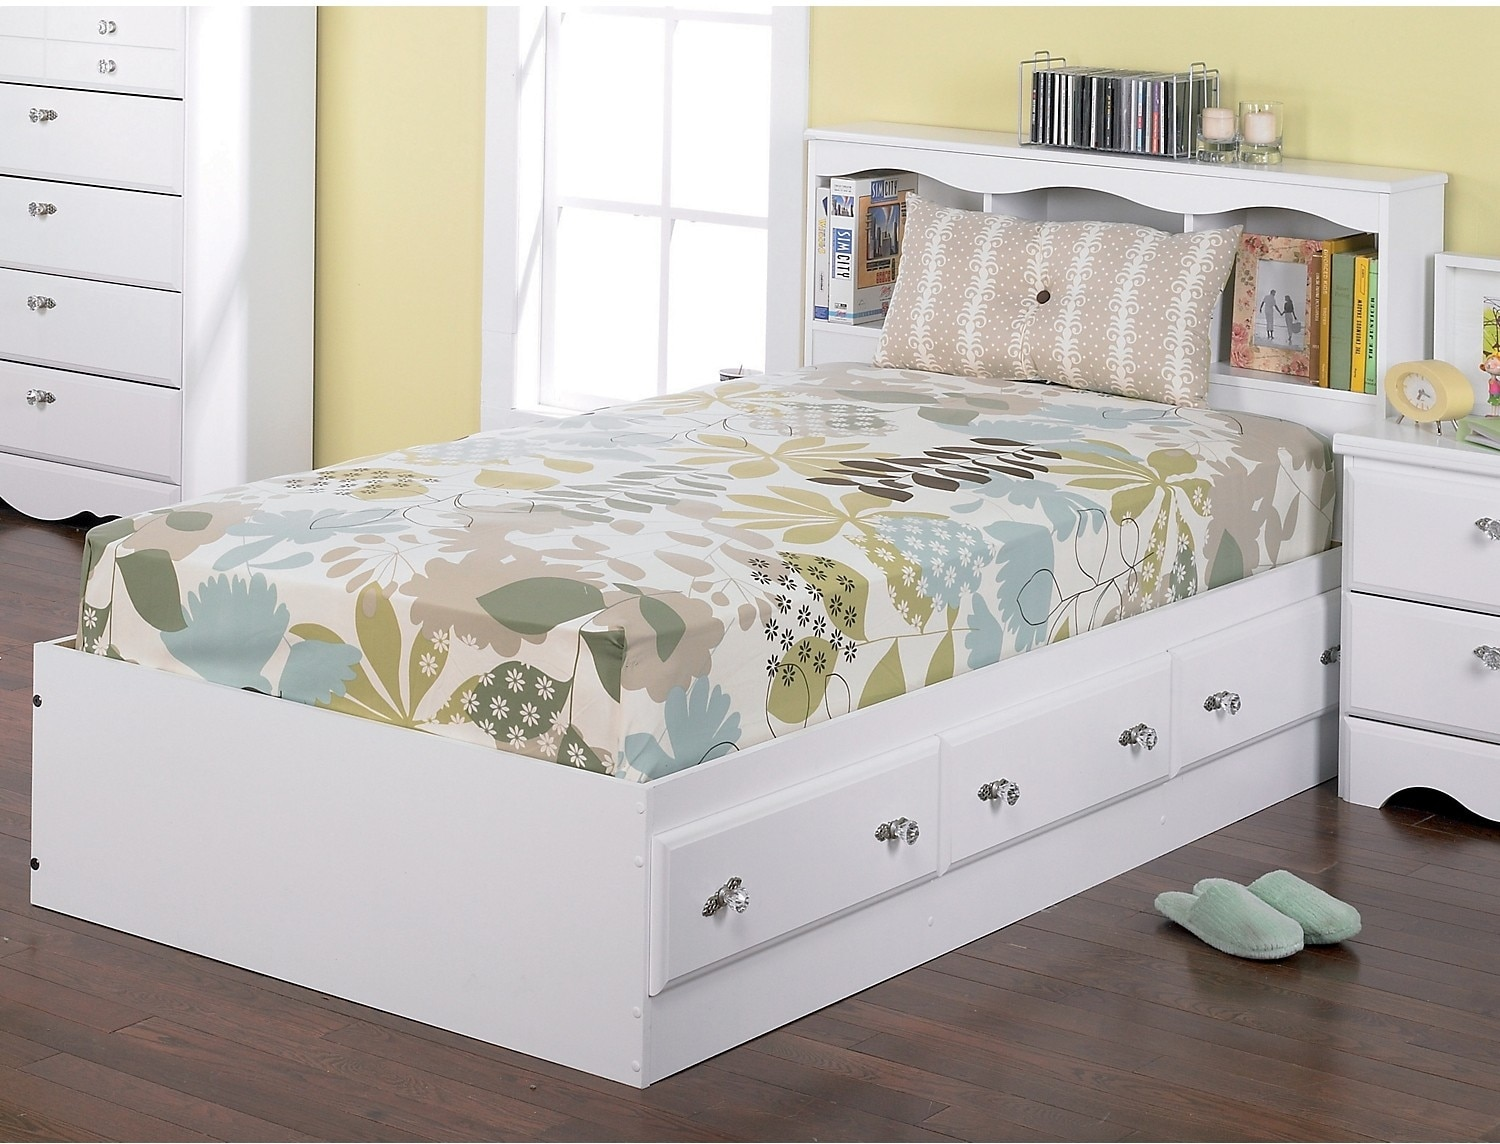 Diamond Dreams Matesbed w/Bookcase Headboard